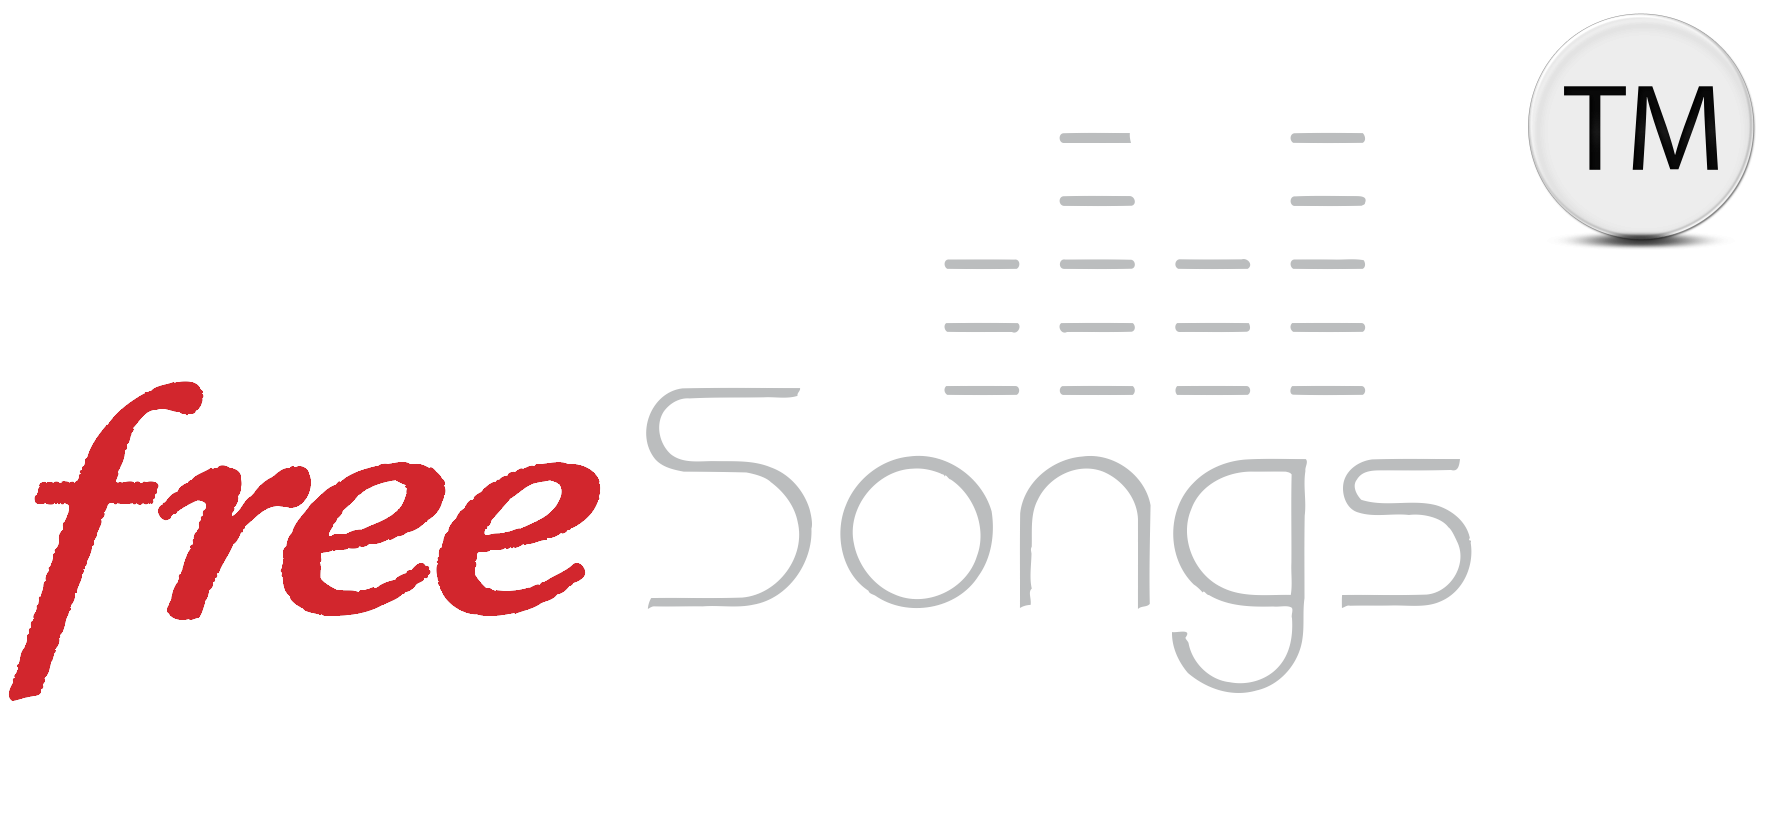 FreeSongs music